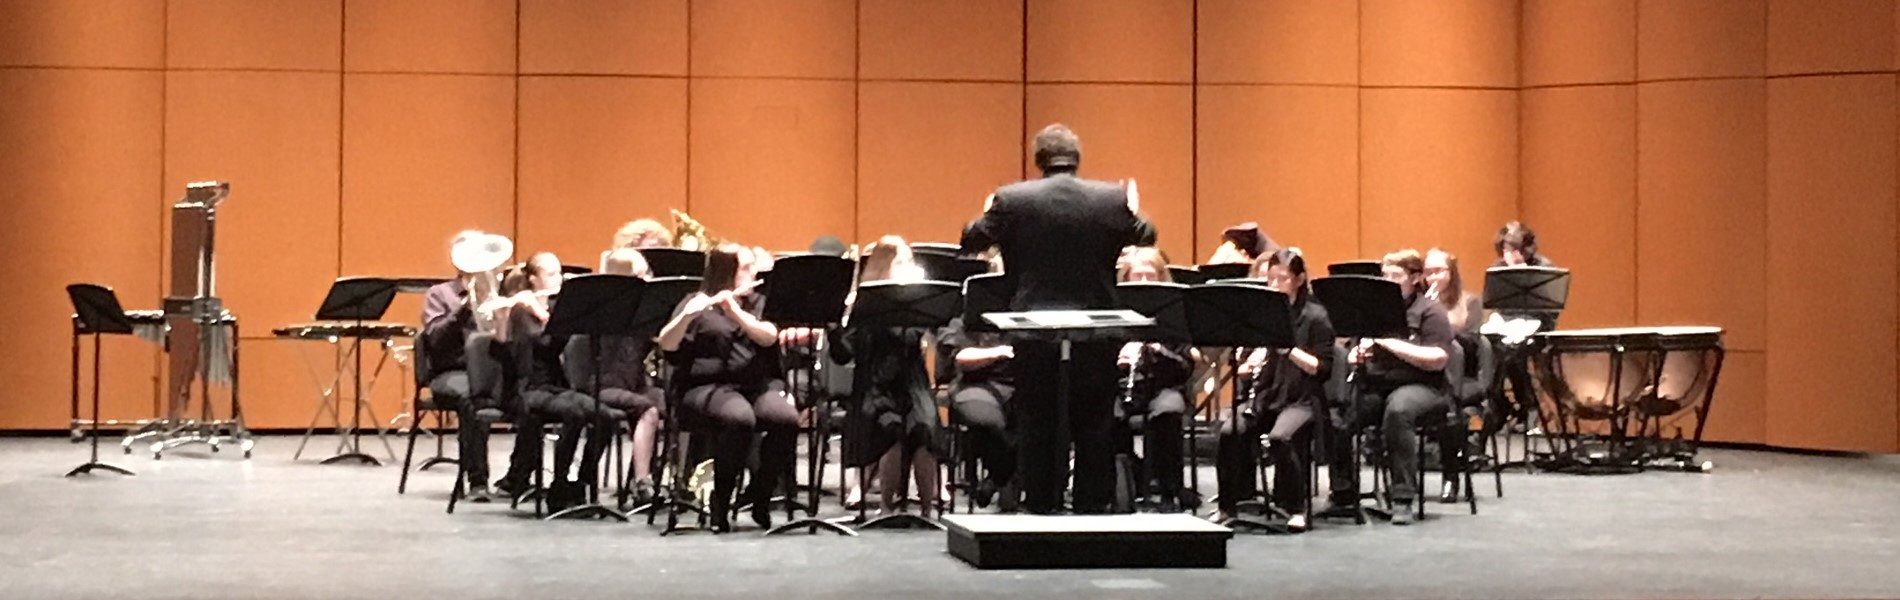 JCHS Band at KMEA Concert Band Assessment